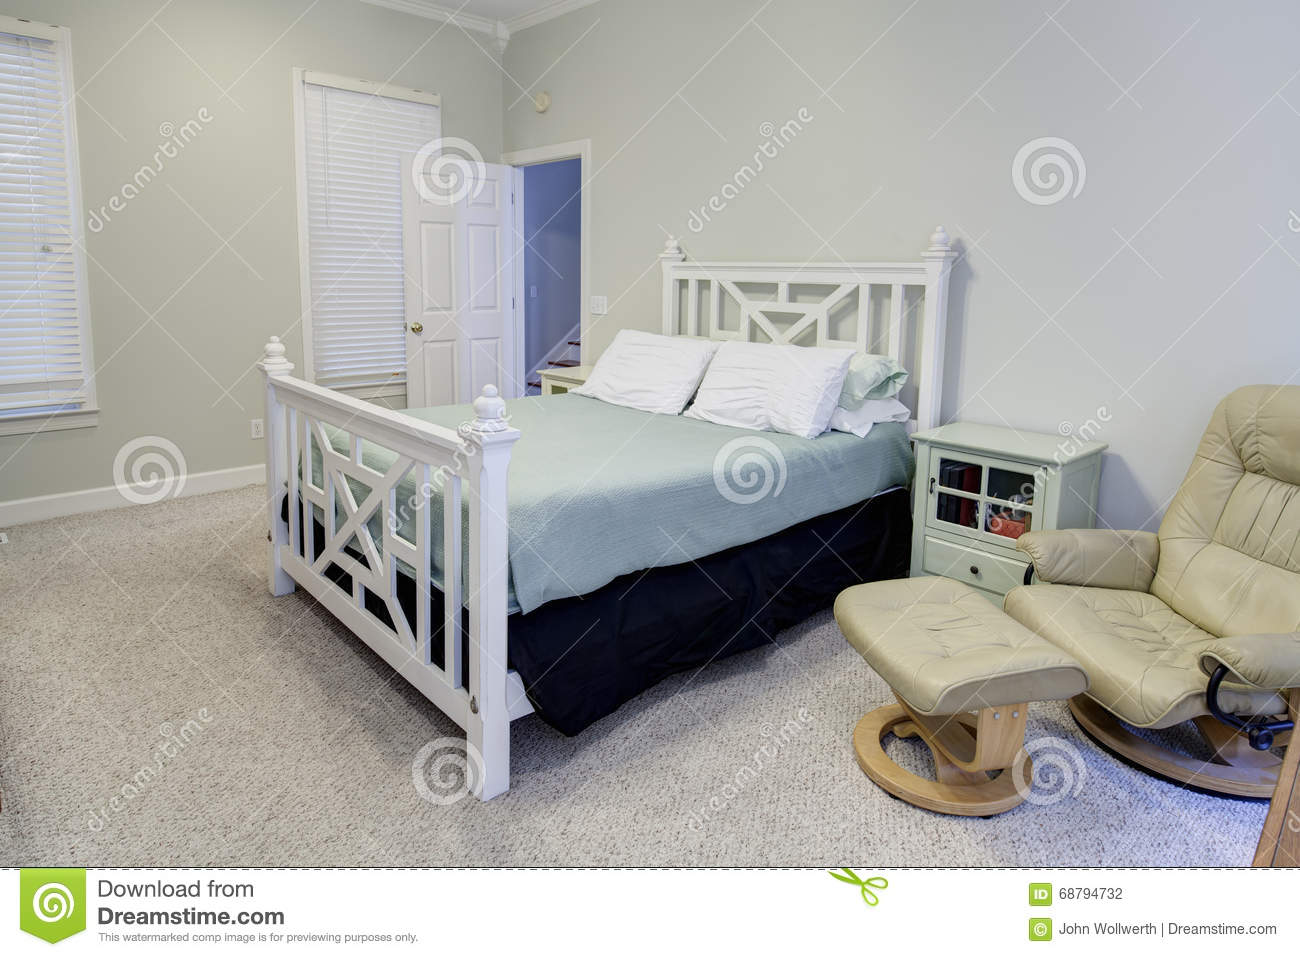 Simple bedroom in neutral colors stock photo image 68794732 for Bright neutral paint colors